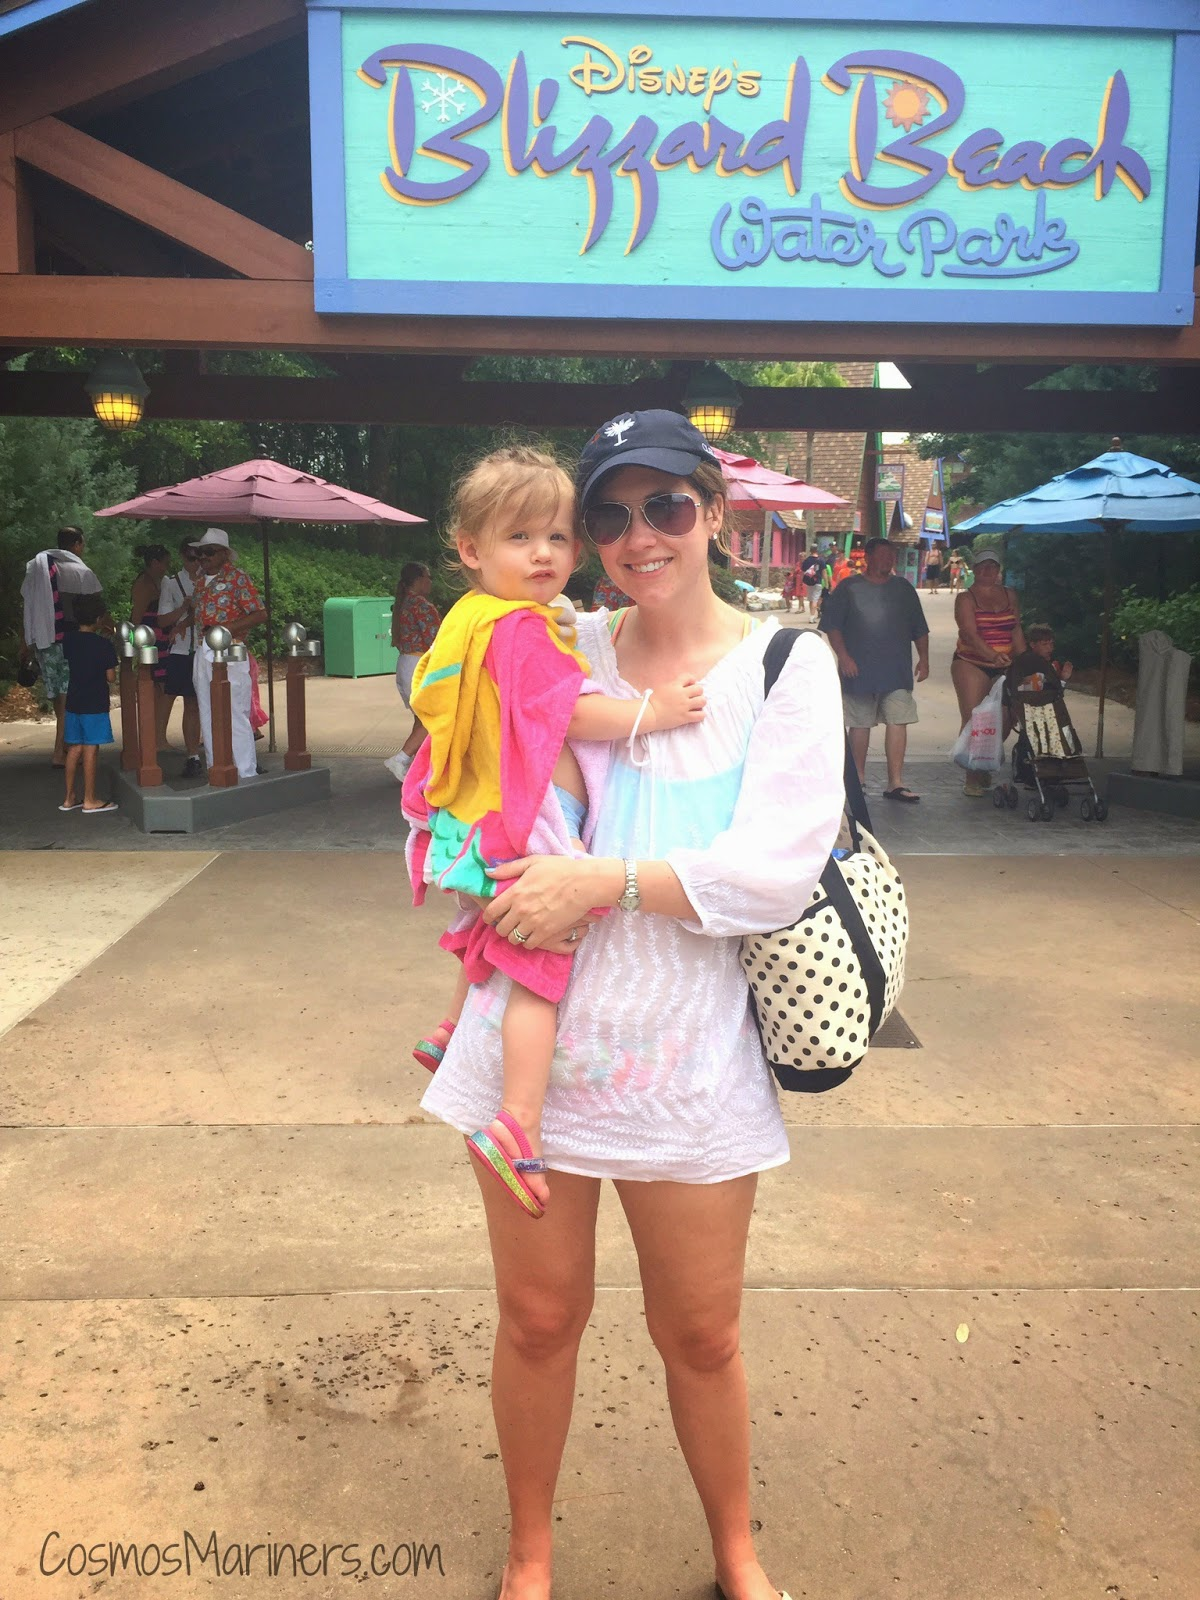 Doing Disney's Blizzard Beach Water Park with a Toddler | CosmosMariners.com